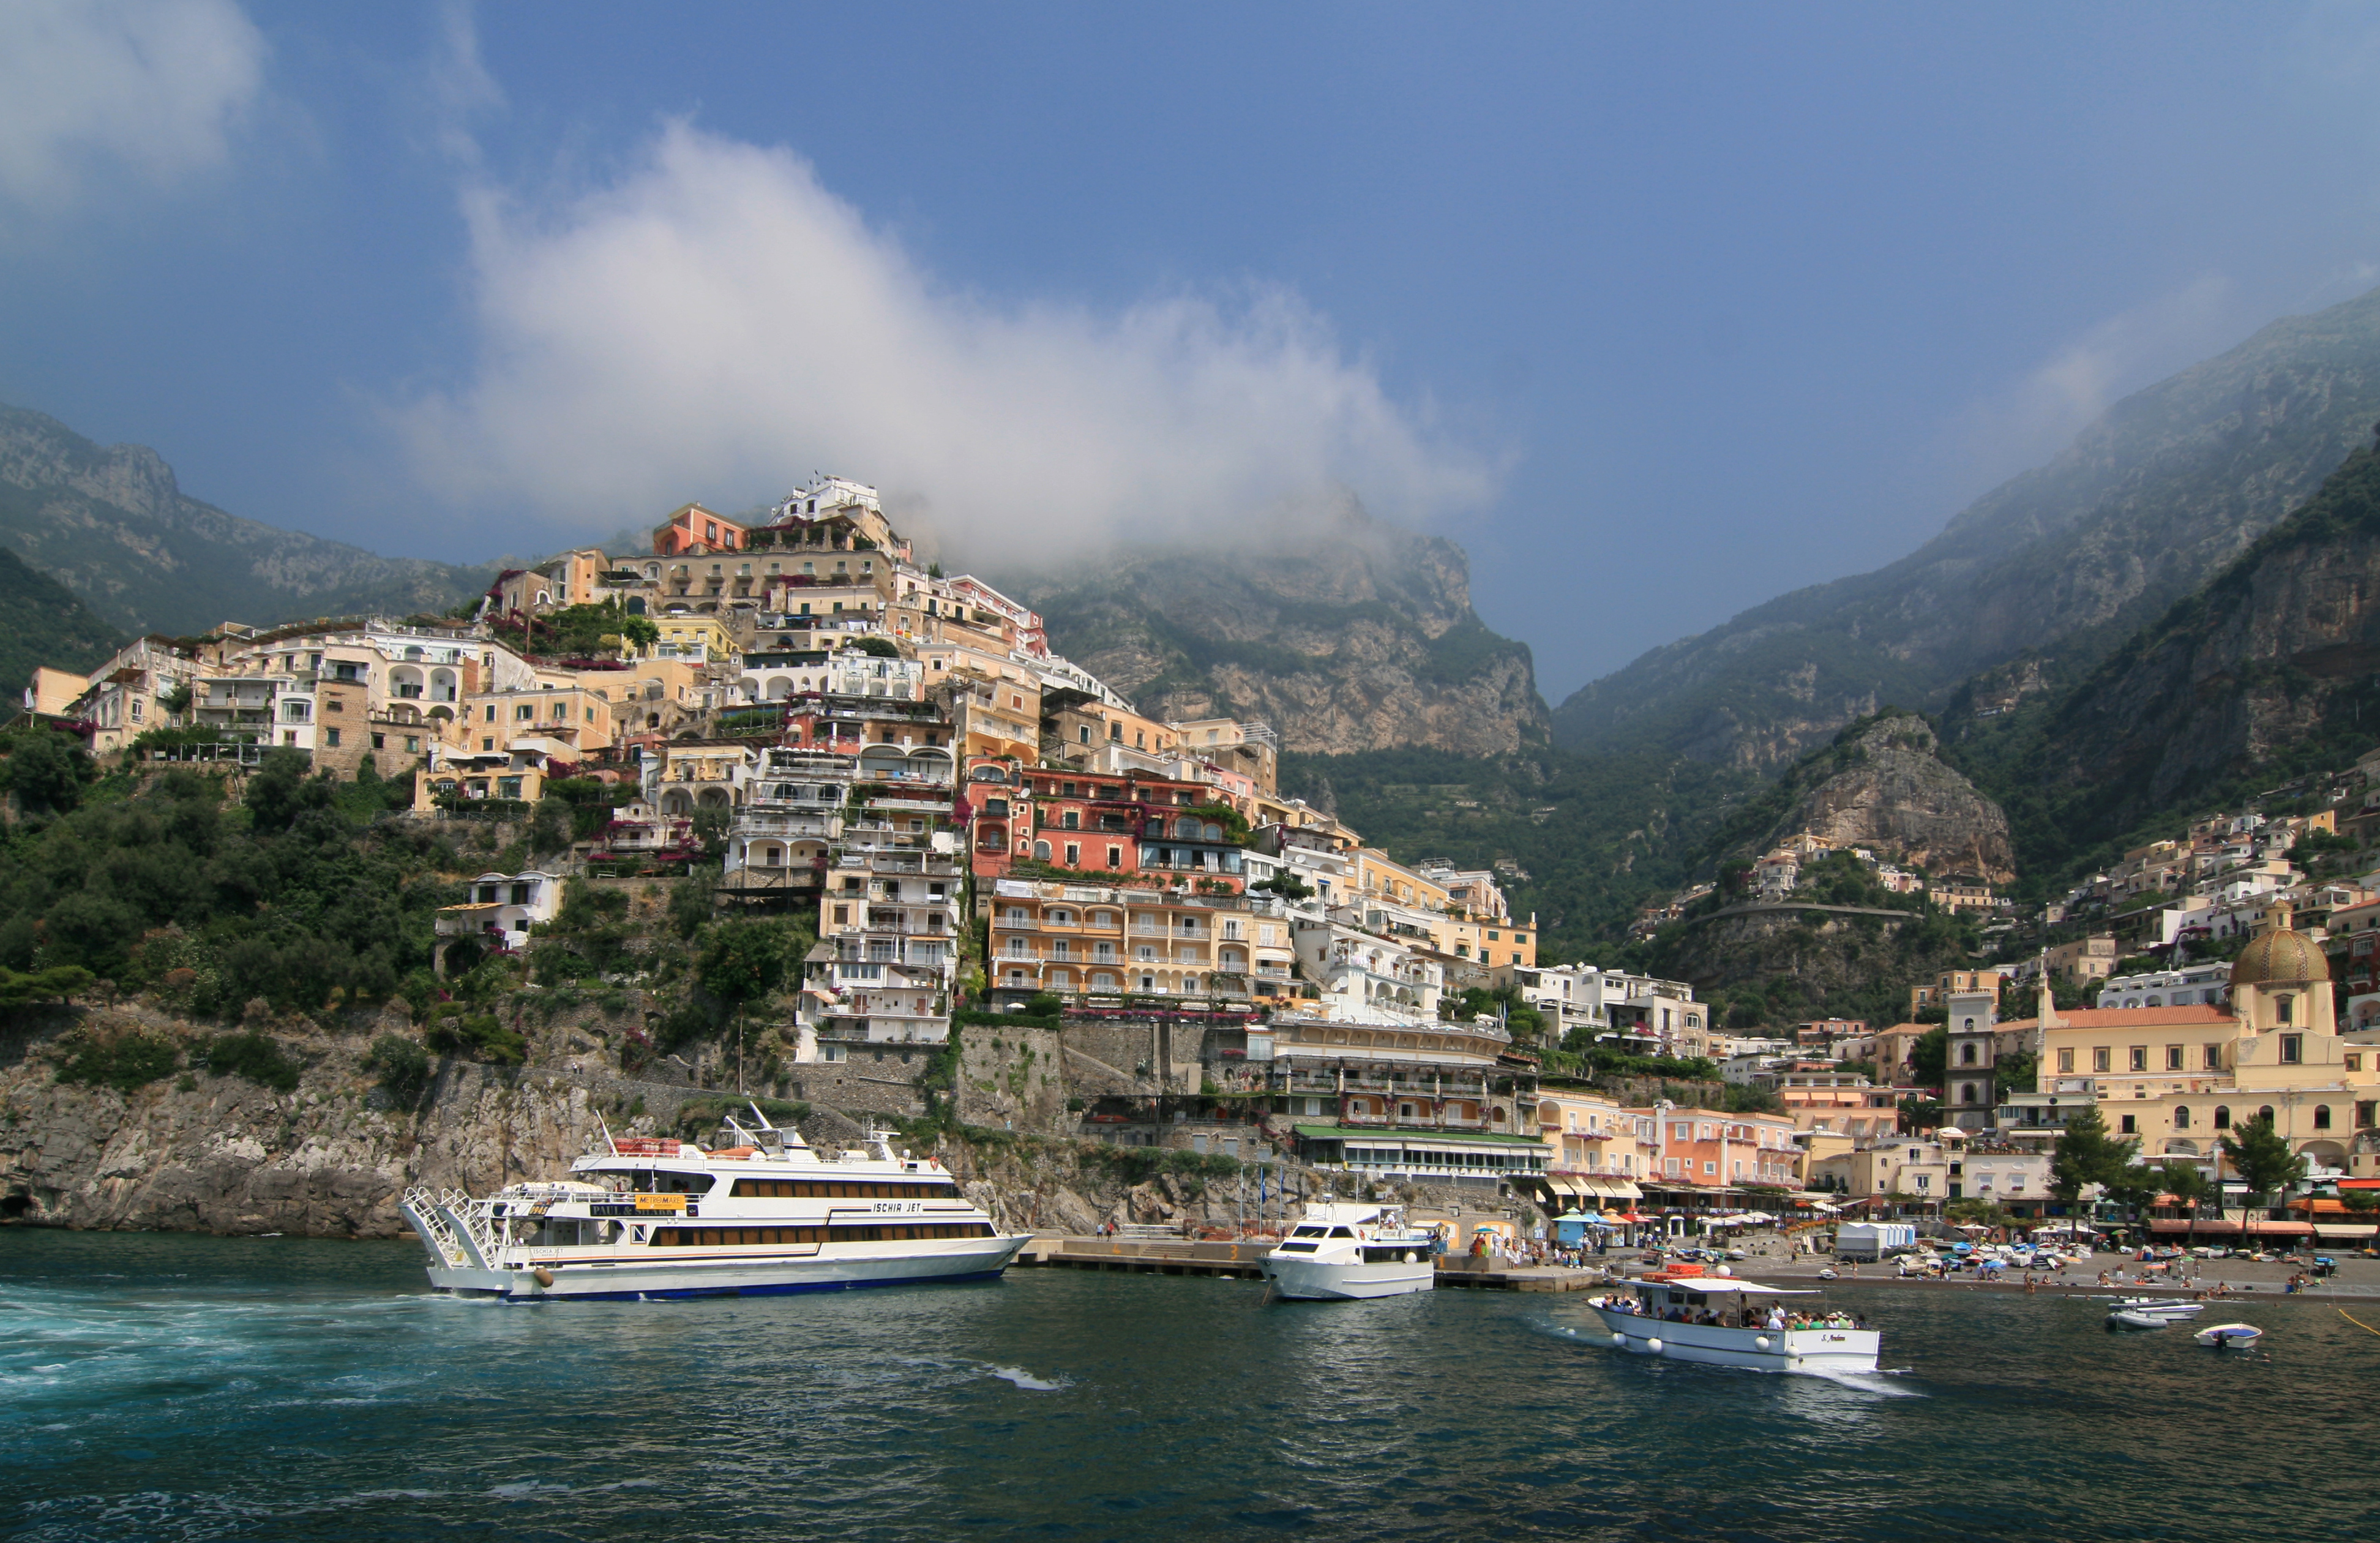 Positano Italy  City pictures : ... Medieval Town of Positano in Campania, Italy | I Like To Waste My Time